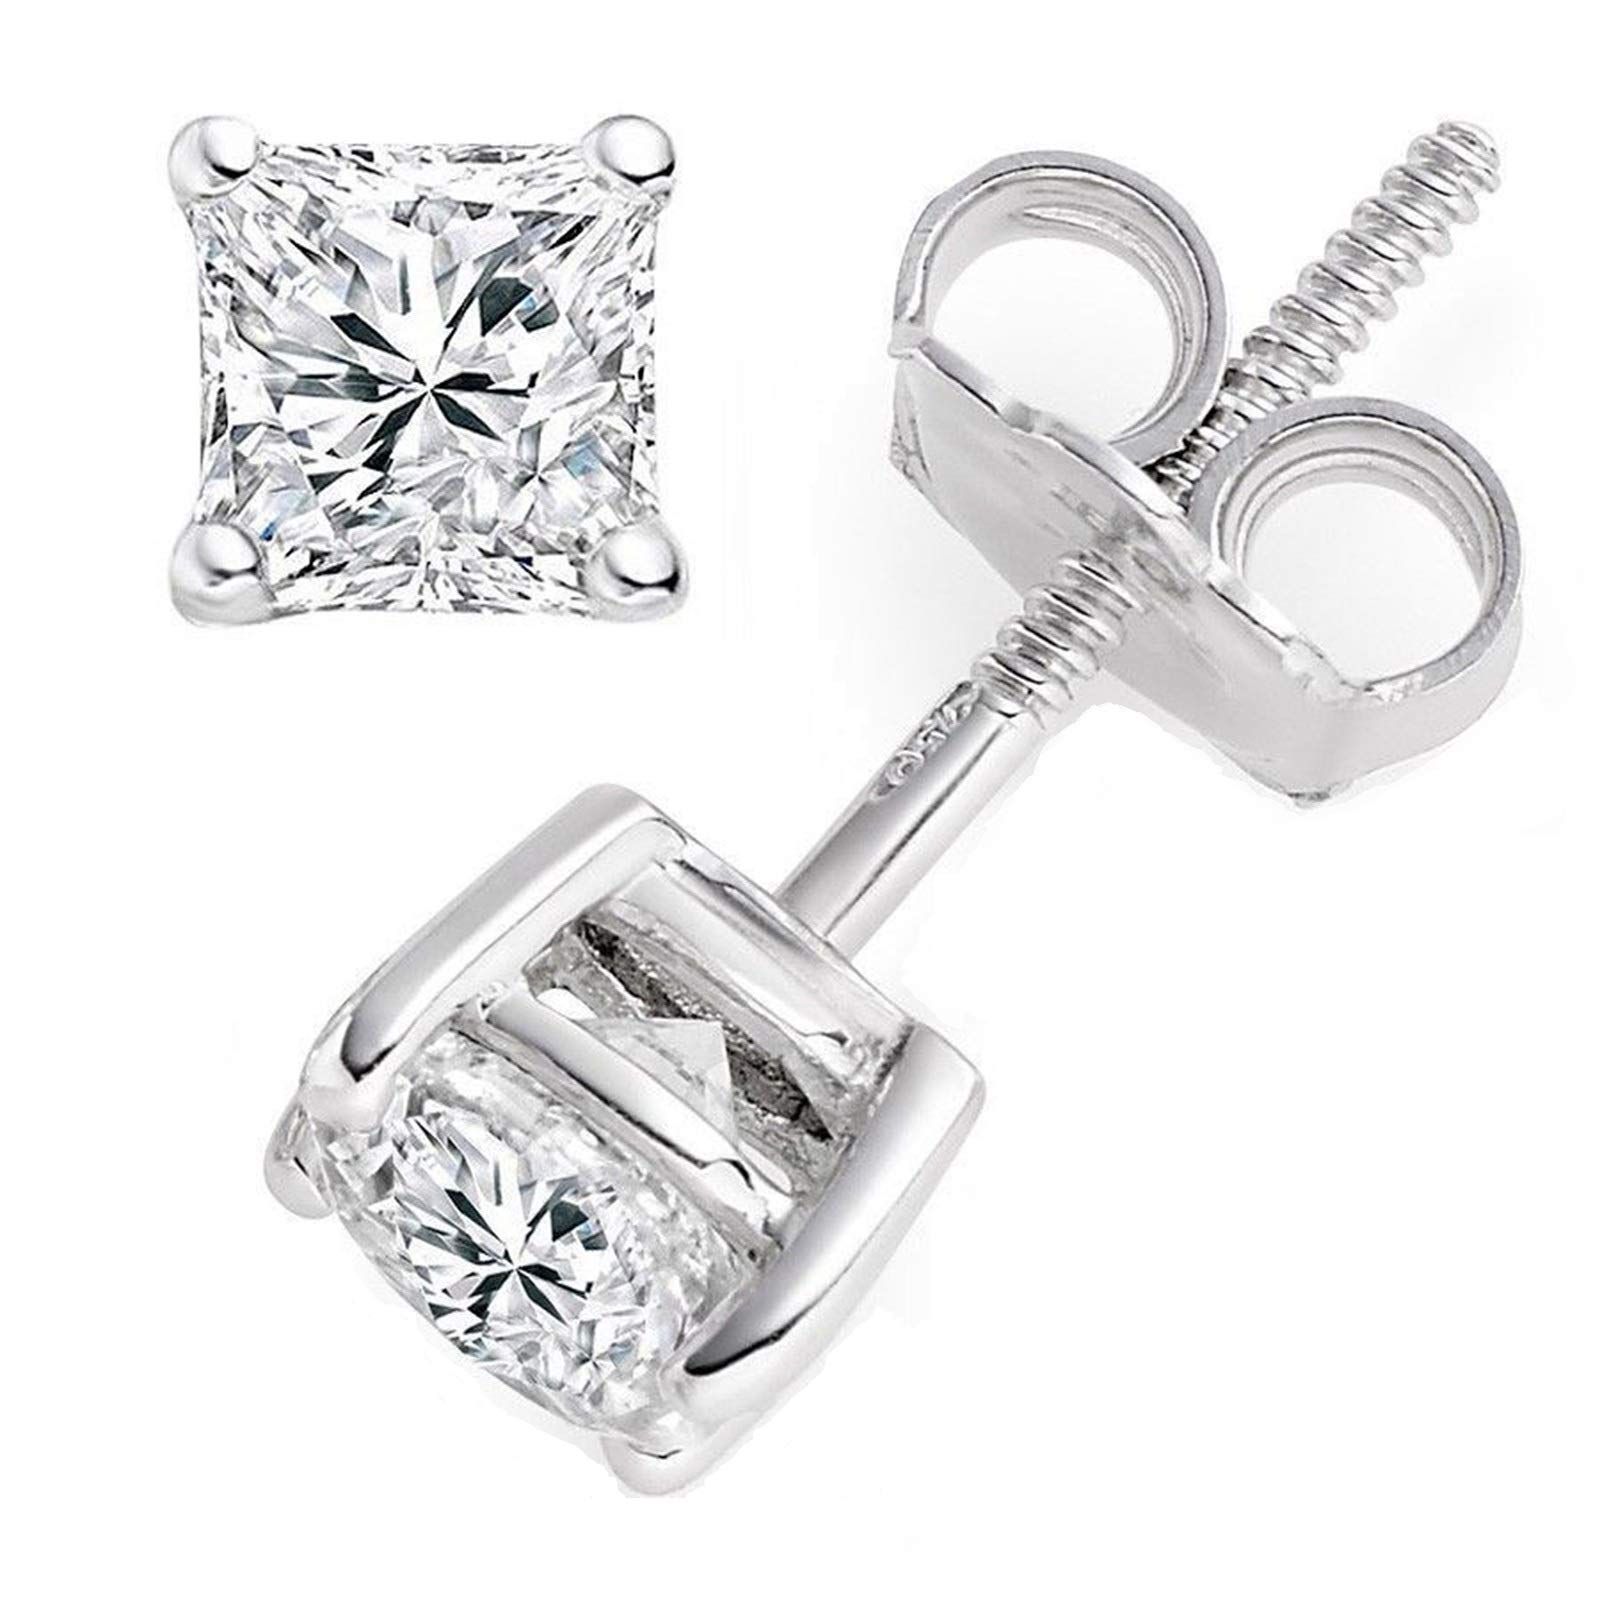 2.10 CT Princess Brilliant Cut CZ Solitaire Stud Earrings in 14k White Gold Screw Back